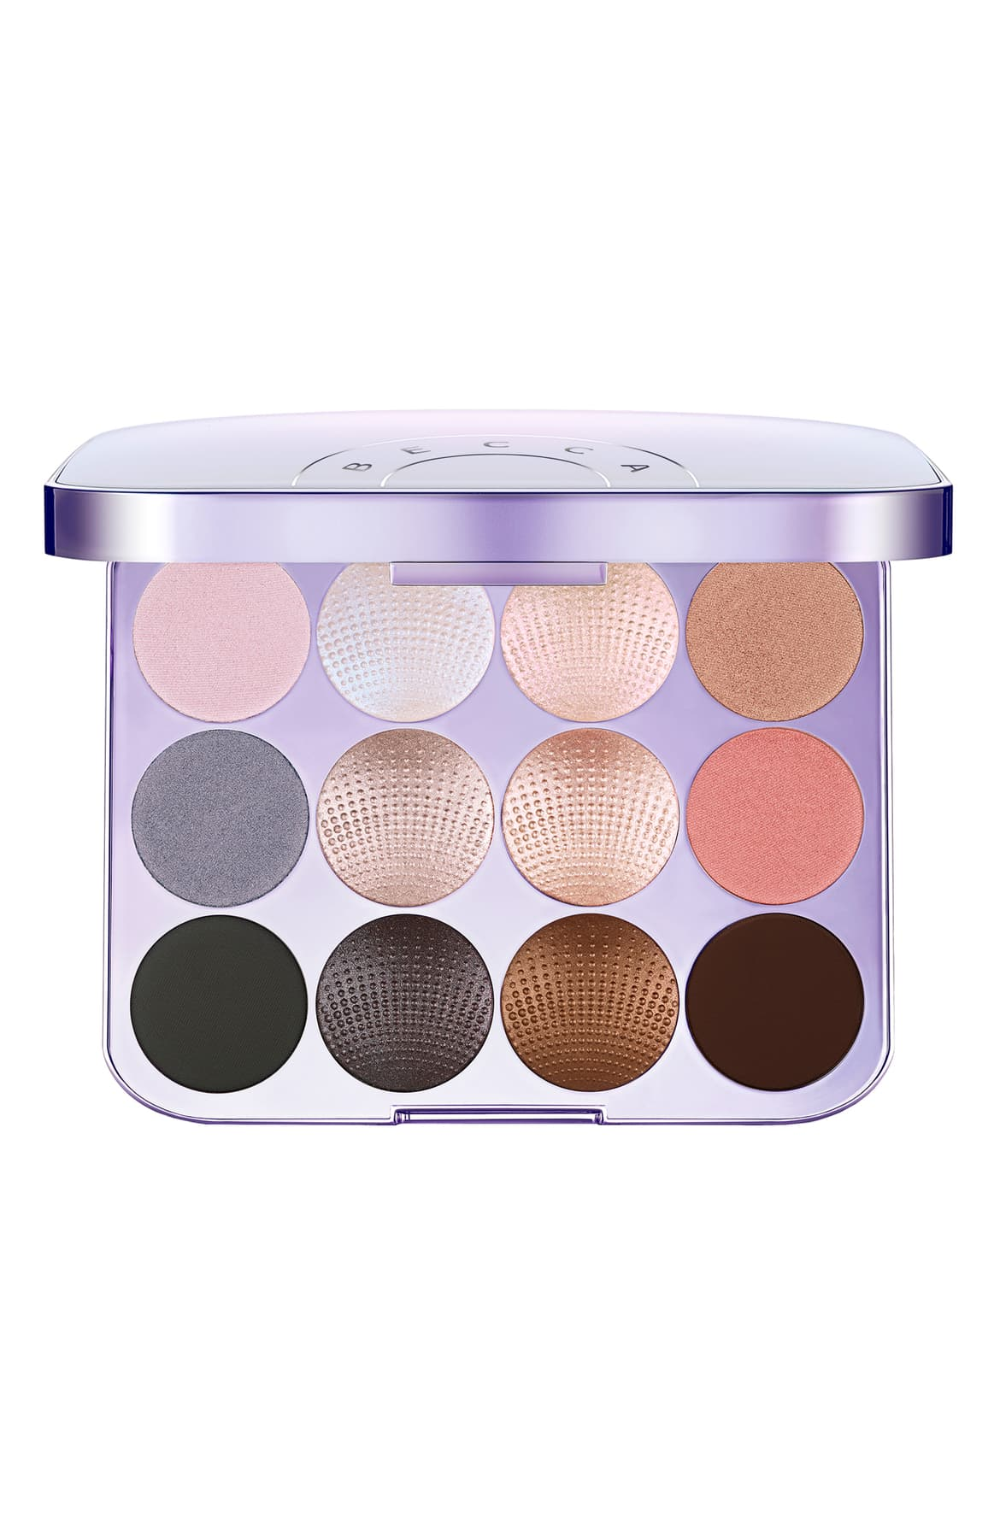 BECCA Pearl Glow Shimmering Eyeshadow Palette (Limited